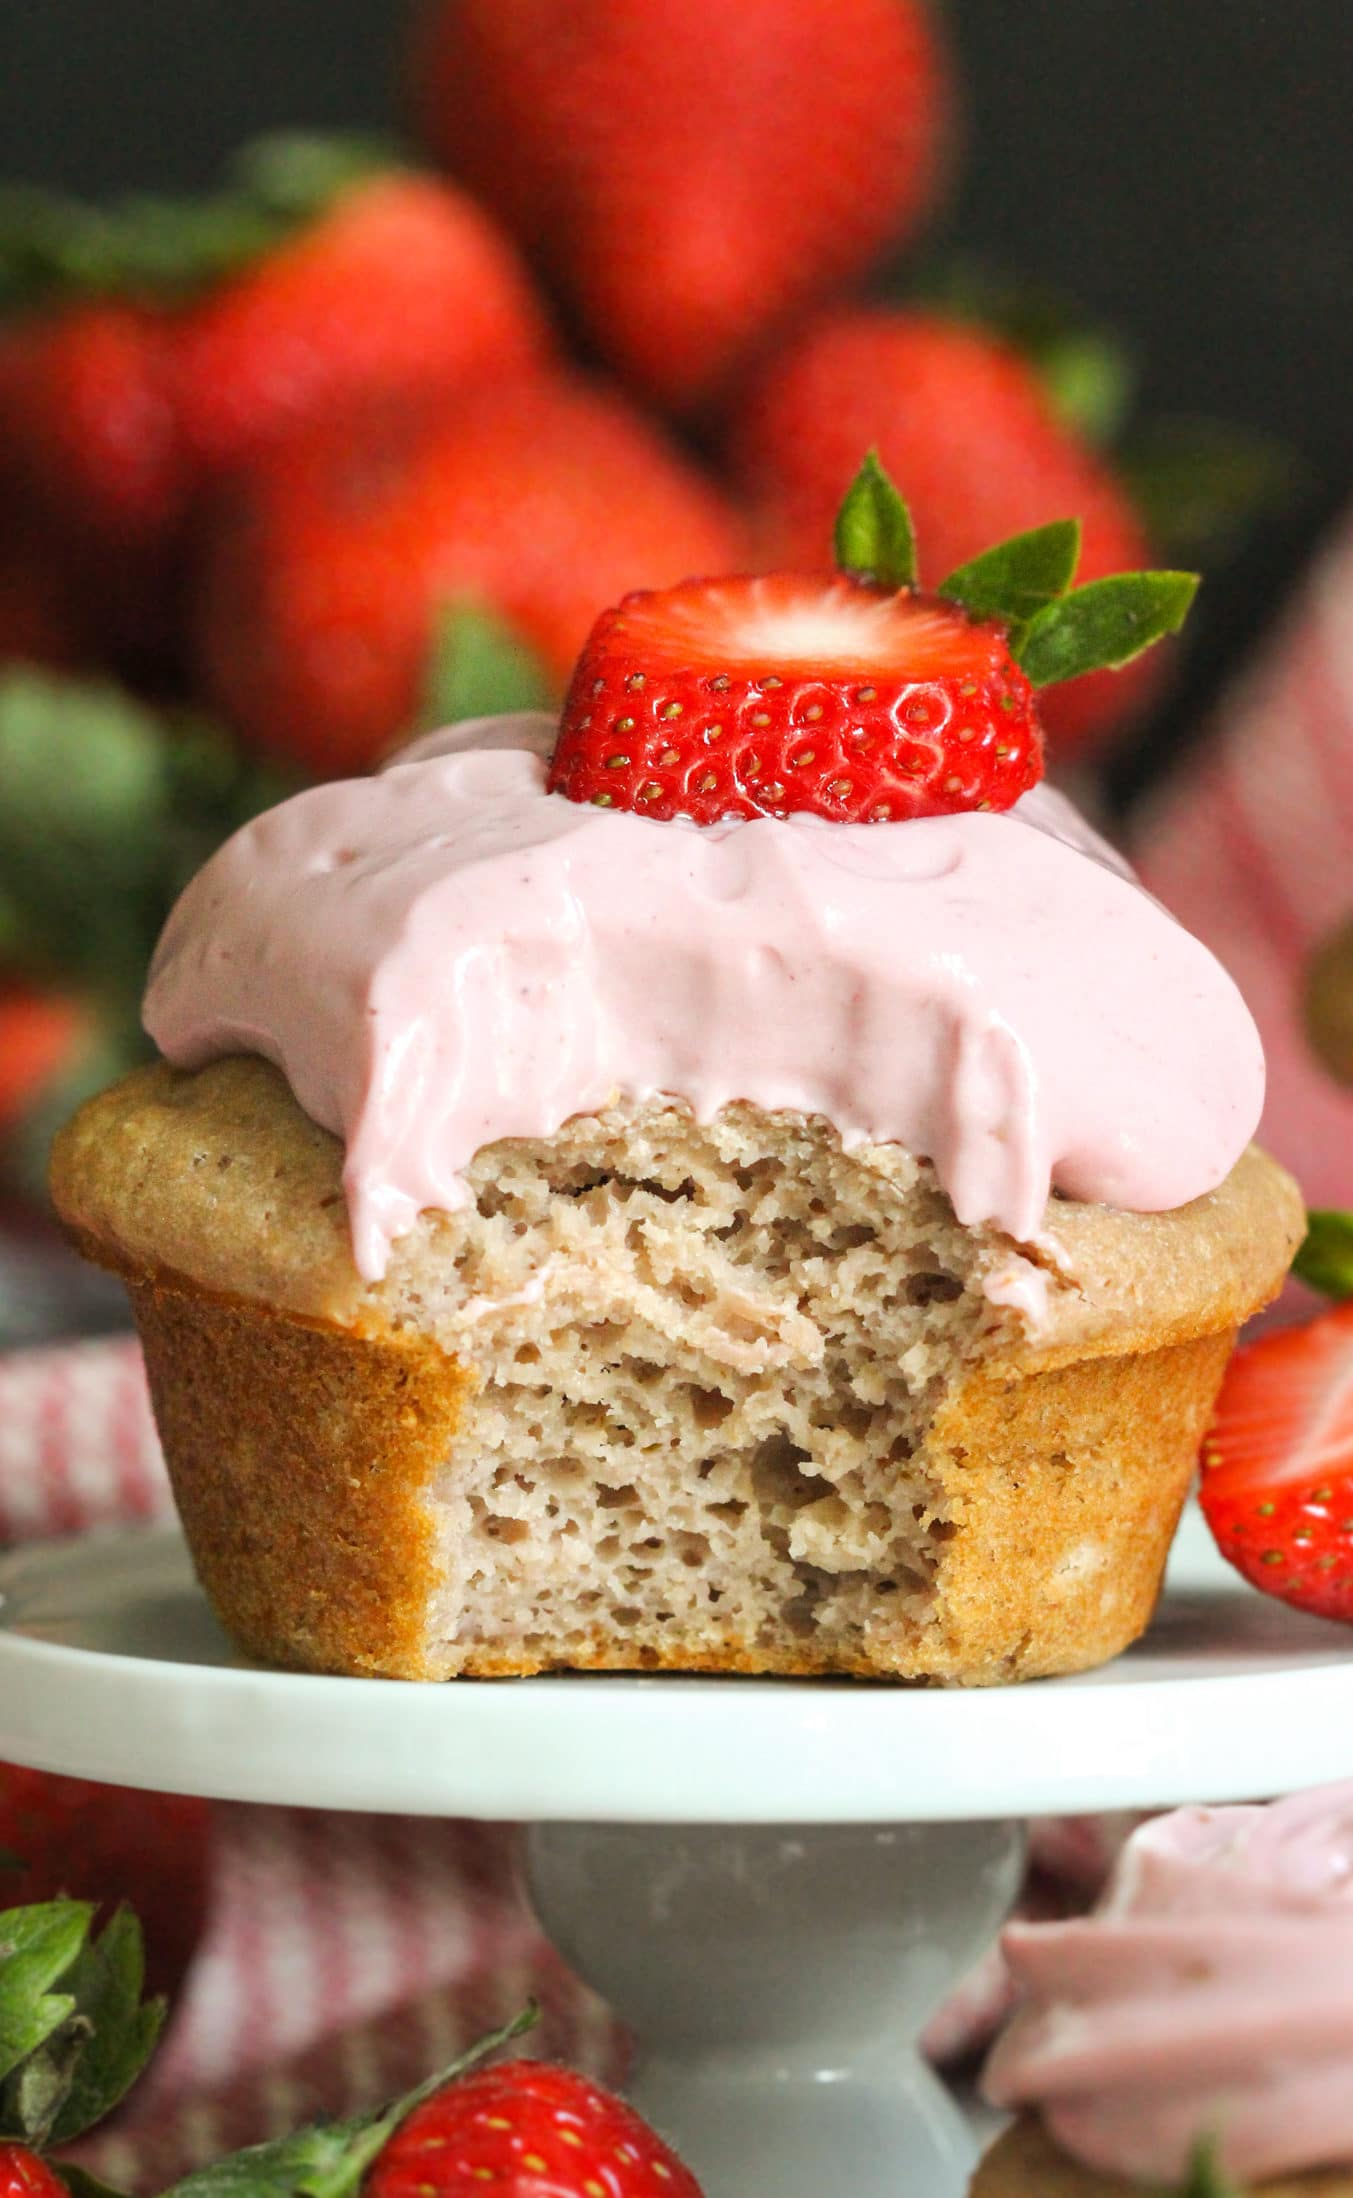 Healthy Strawberry Cupcakes with Strawberry Frosting (refined sugar free, low fat, high protein) - Healthy Dessert Recipes at Desserts with Benefits